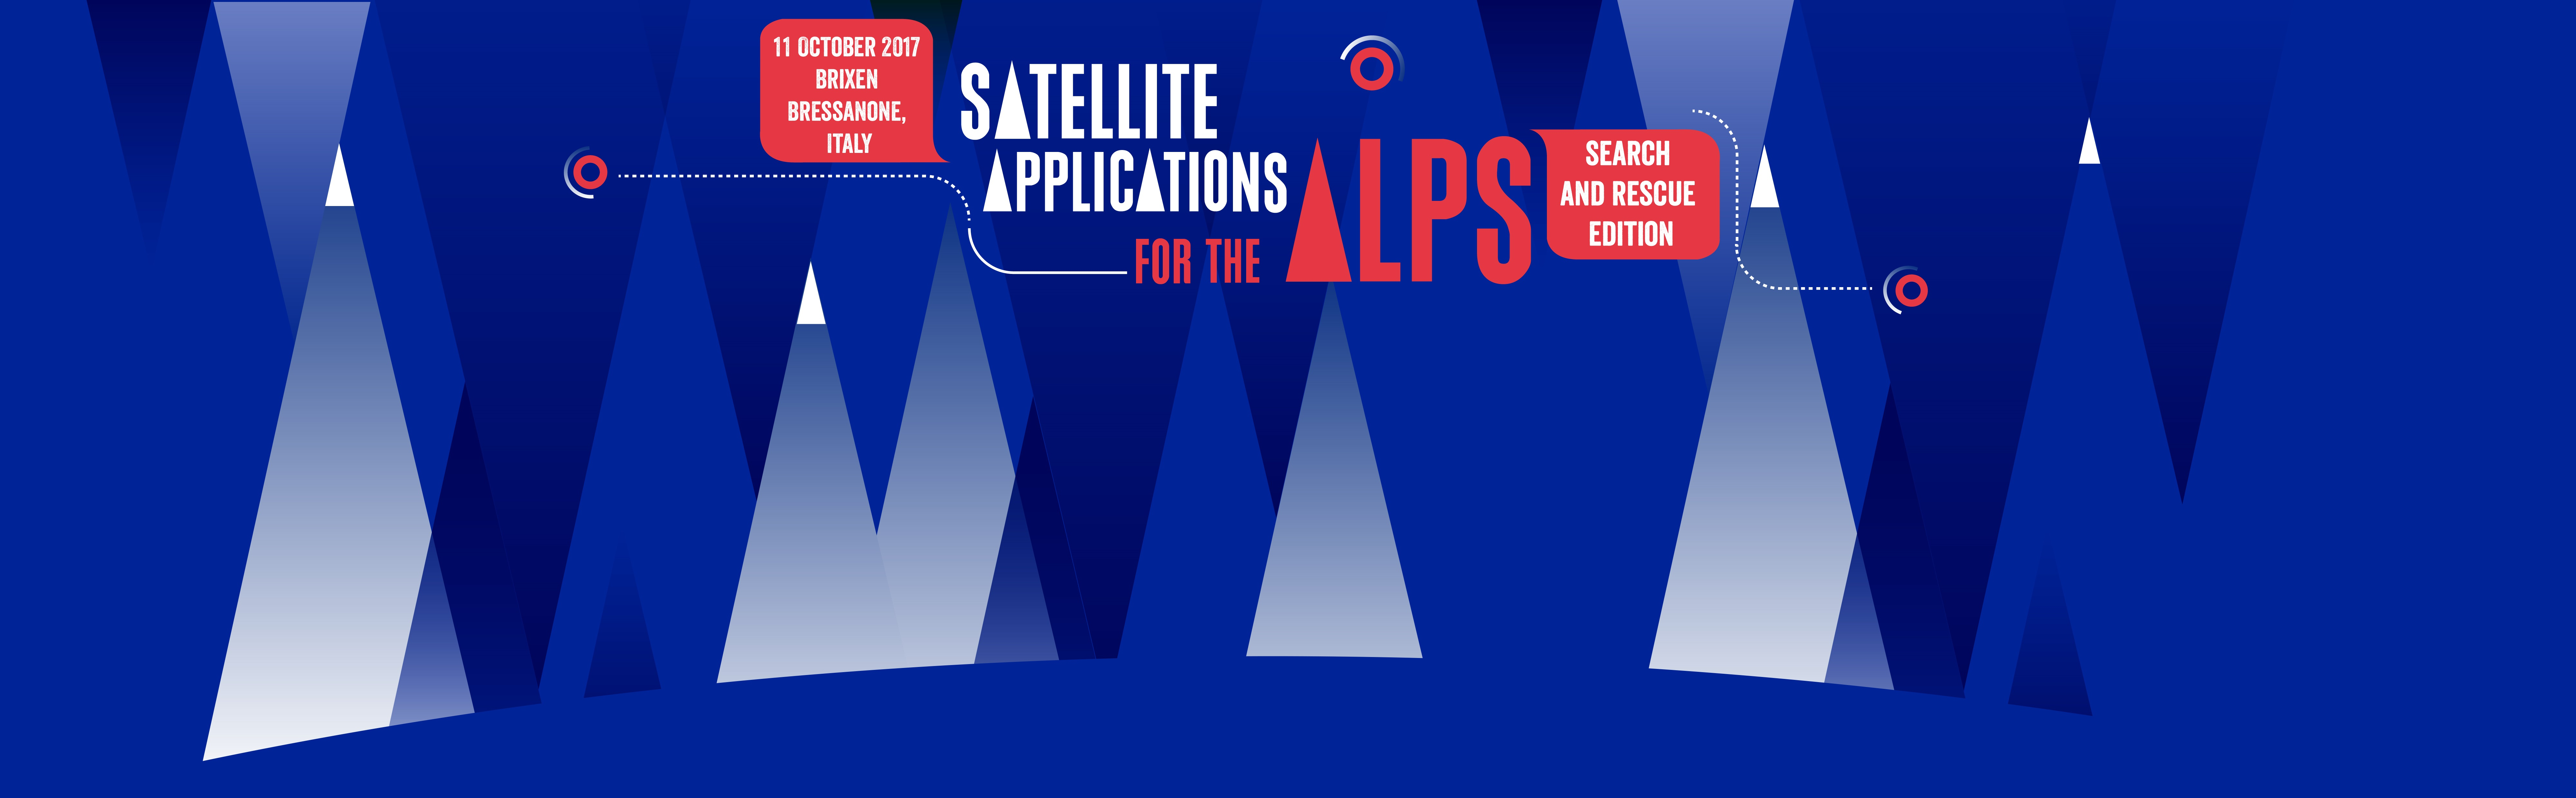 Satellite Applications for the Alps: Search and Rescue